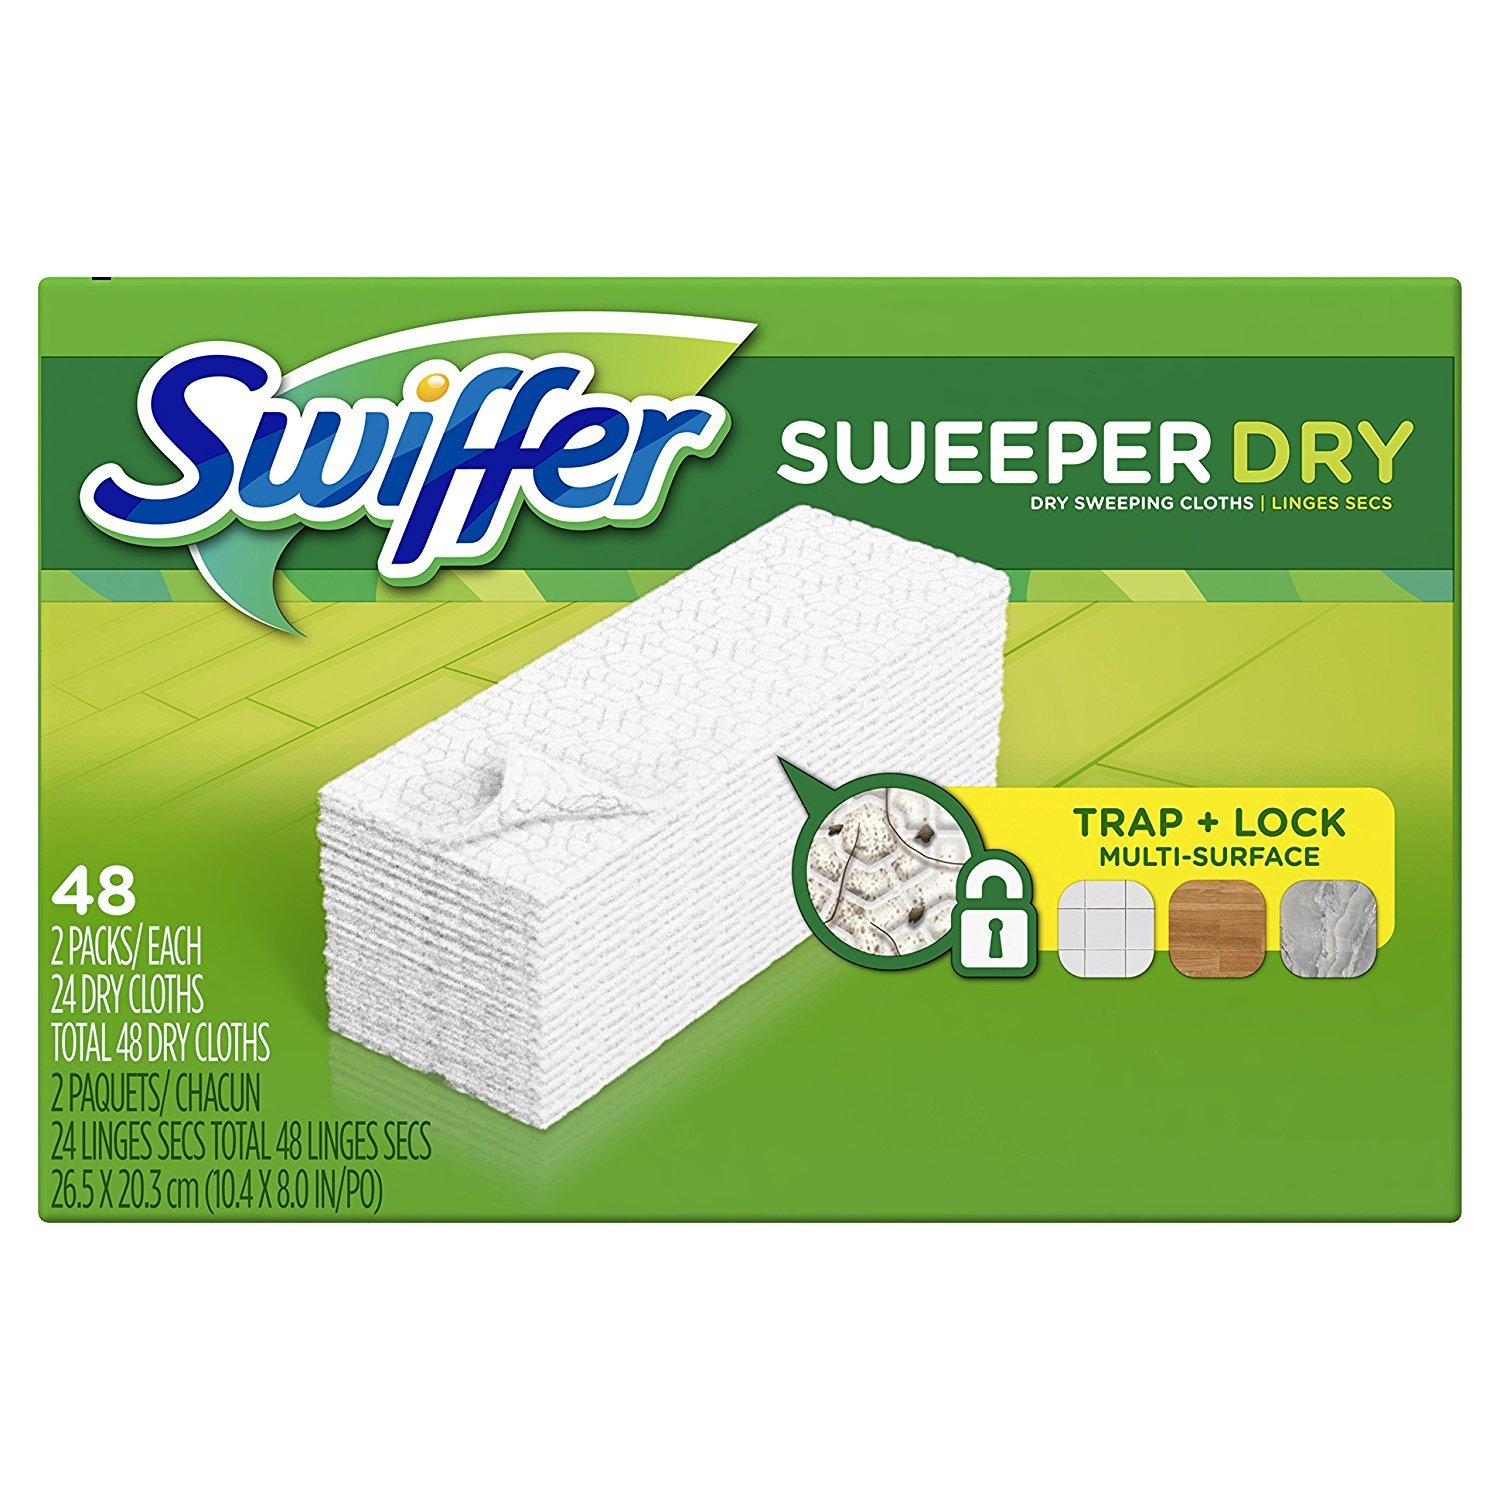 Swiffer Sweeper Dry Sweeping Cloth Refills, 48 Count -5